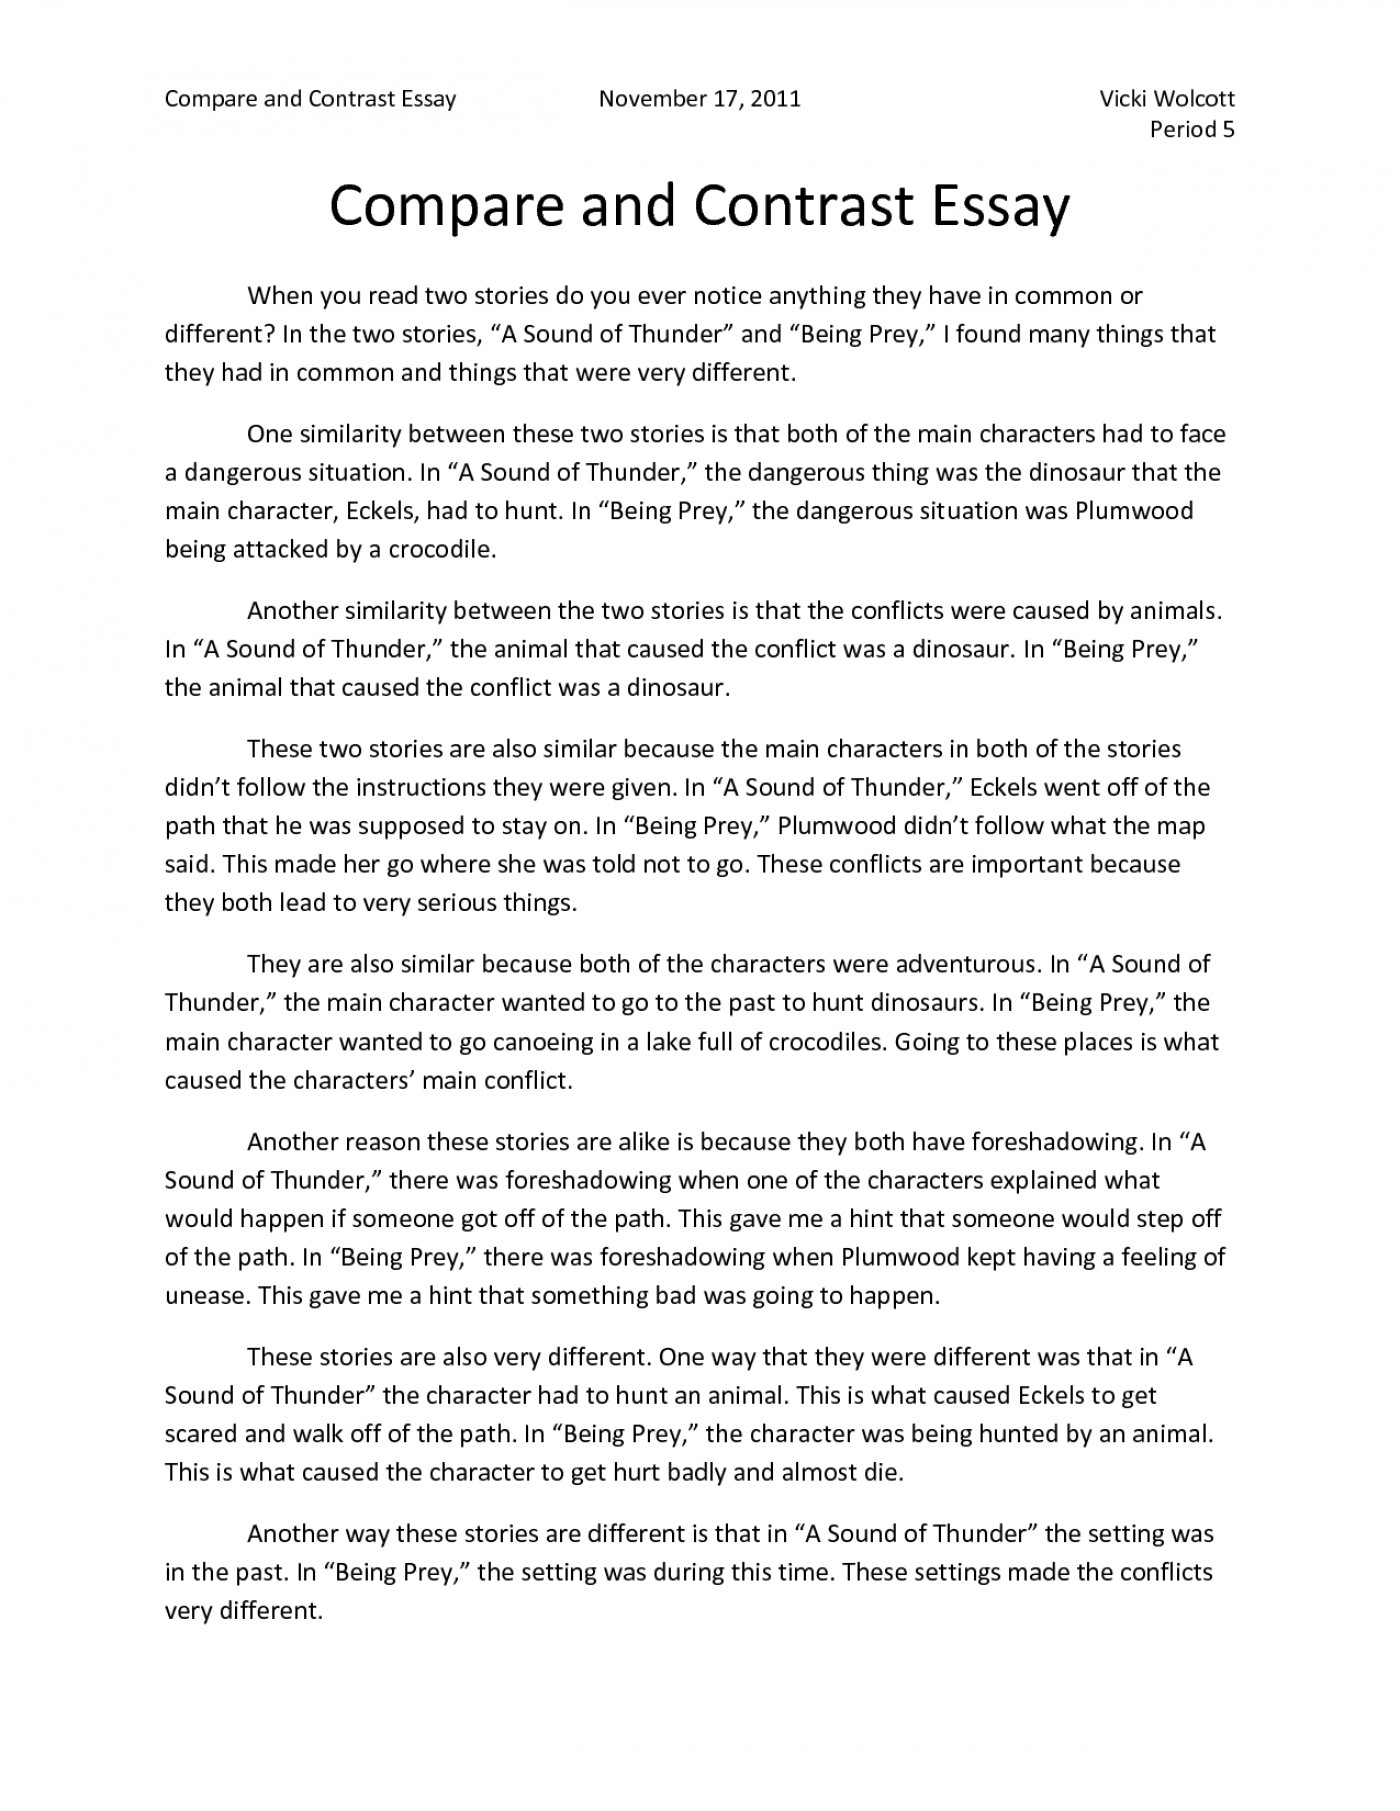 004 Essay Example Compare And Contrast Gallery Template Drawing Art Throughout College Examples Introduction Question Scholarship Free Edexcel Conclusion Frightening Outline Block Method Ideas High School For Middle 1400